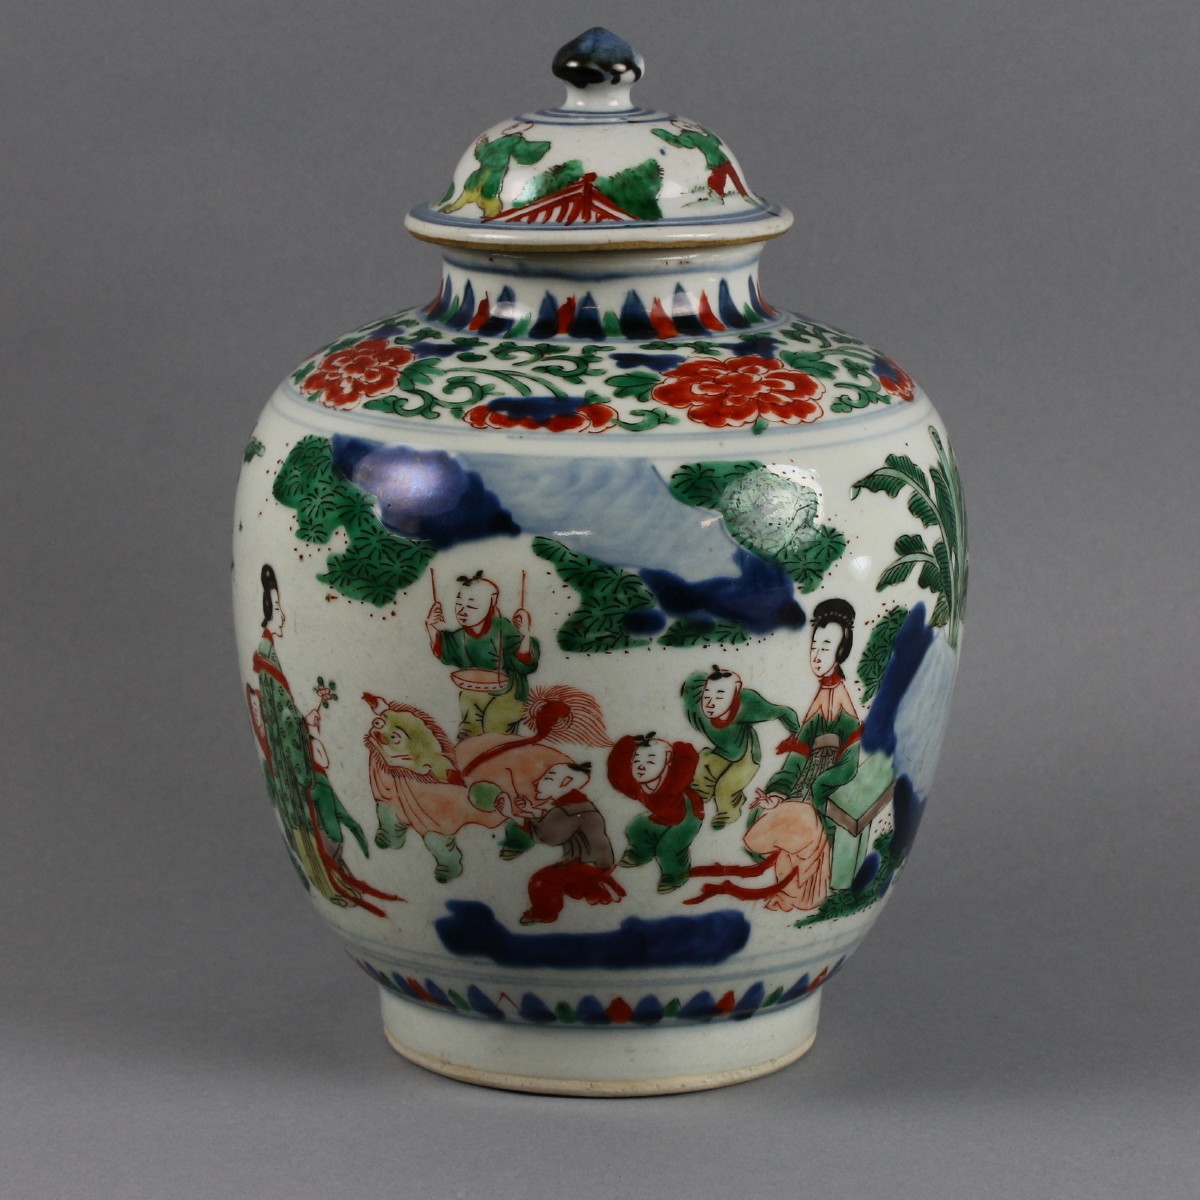 "Chinese Chongzheng (1628-1643) transitional ""Wucai boys"" covered jar, 11½in, similar to an example that sold for HK$275,000 at Christie's May 2012 sale in Hong Kong. Est. $3,000-$5,000. Manatee Galleries image."